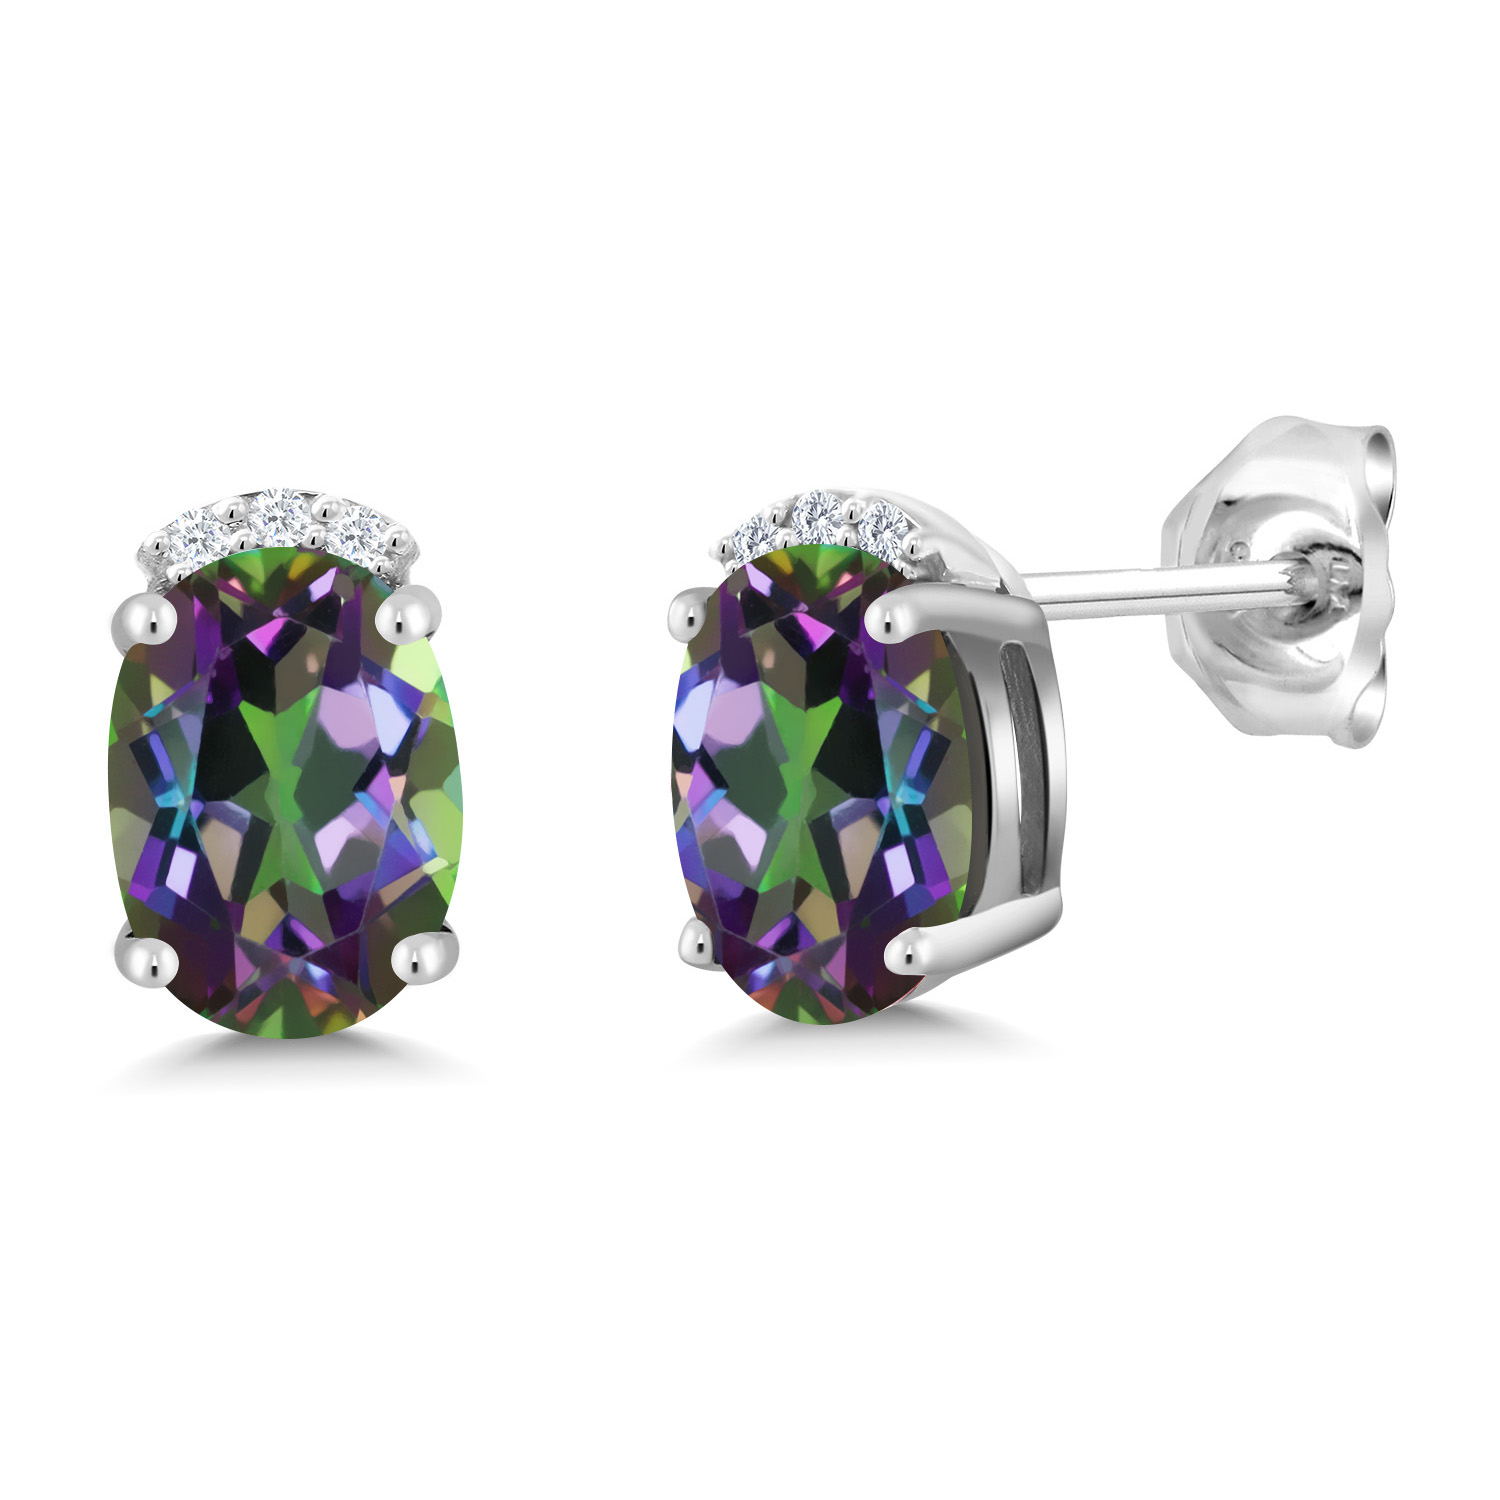 Gem Stone King 2.60 Ct Oval 8x6mm Blue Mystic Topaz 925 Sterling Silver Stud Earrings